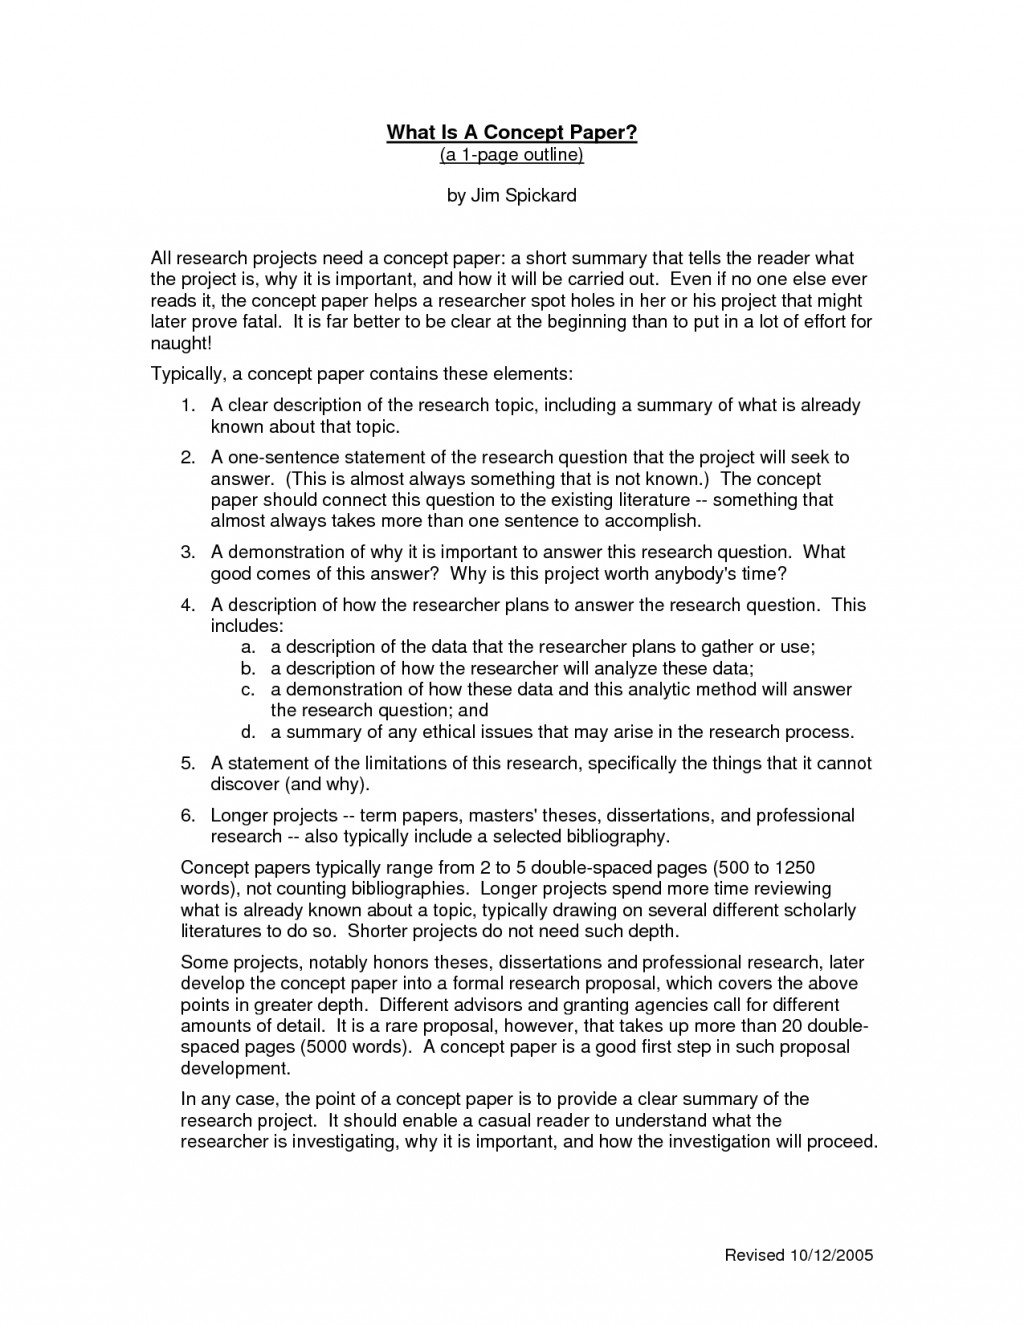 001 Concept Essays Stunning Essay Examples Topic Paper Large